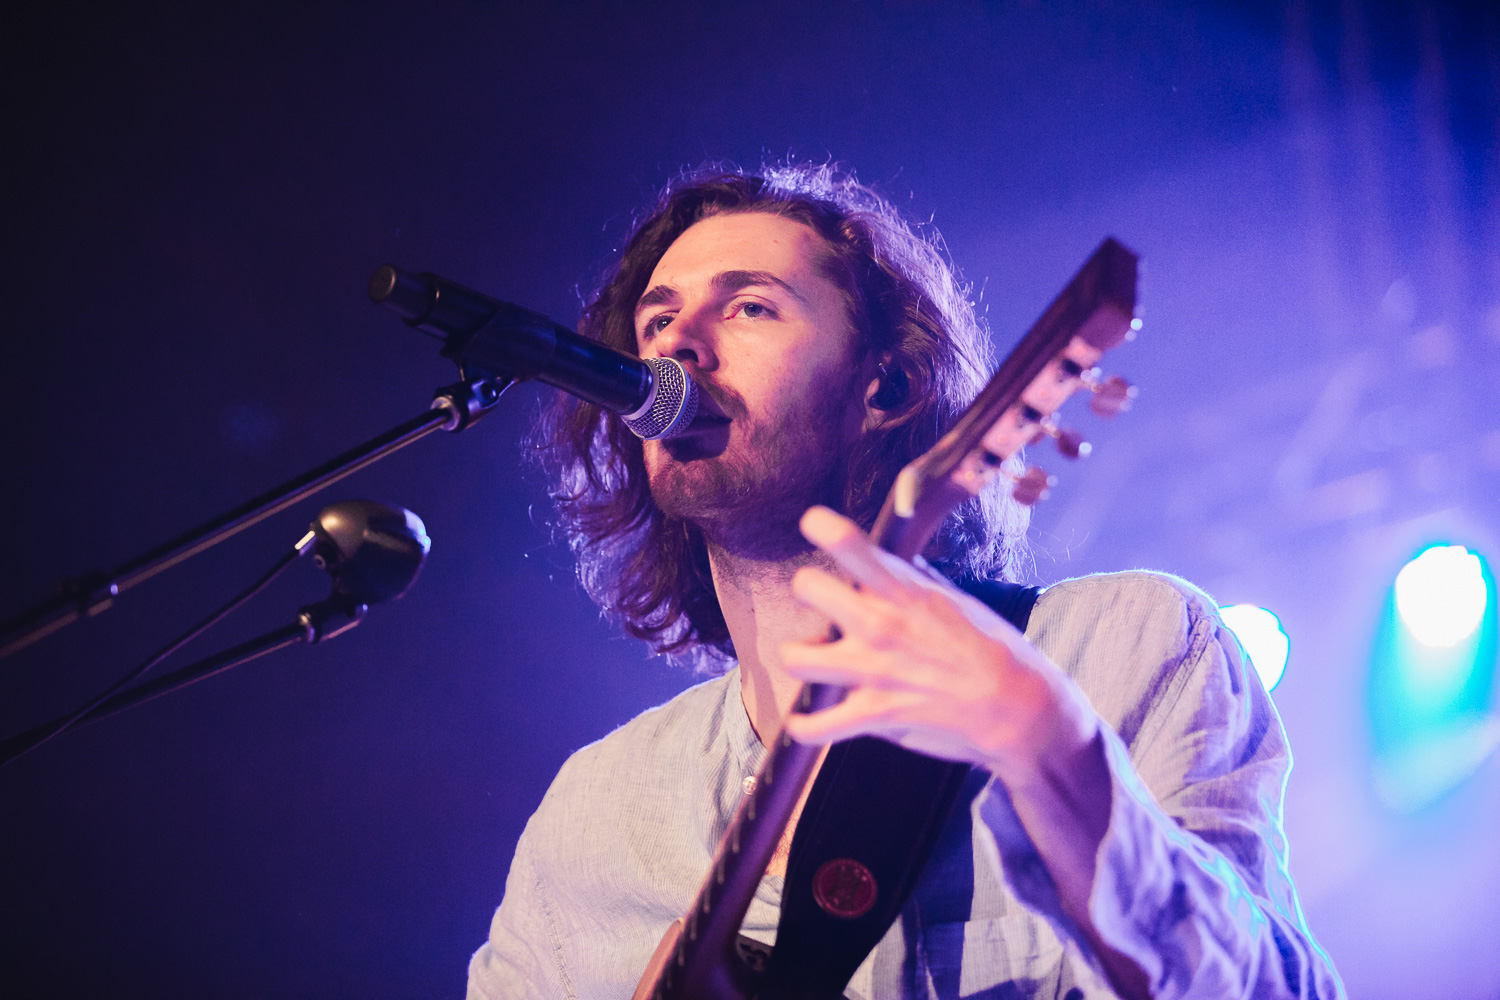 Hozier on stage in Salt Lake City and the Union Event Center. Photo: @Lmsorenson